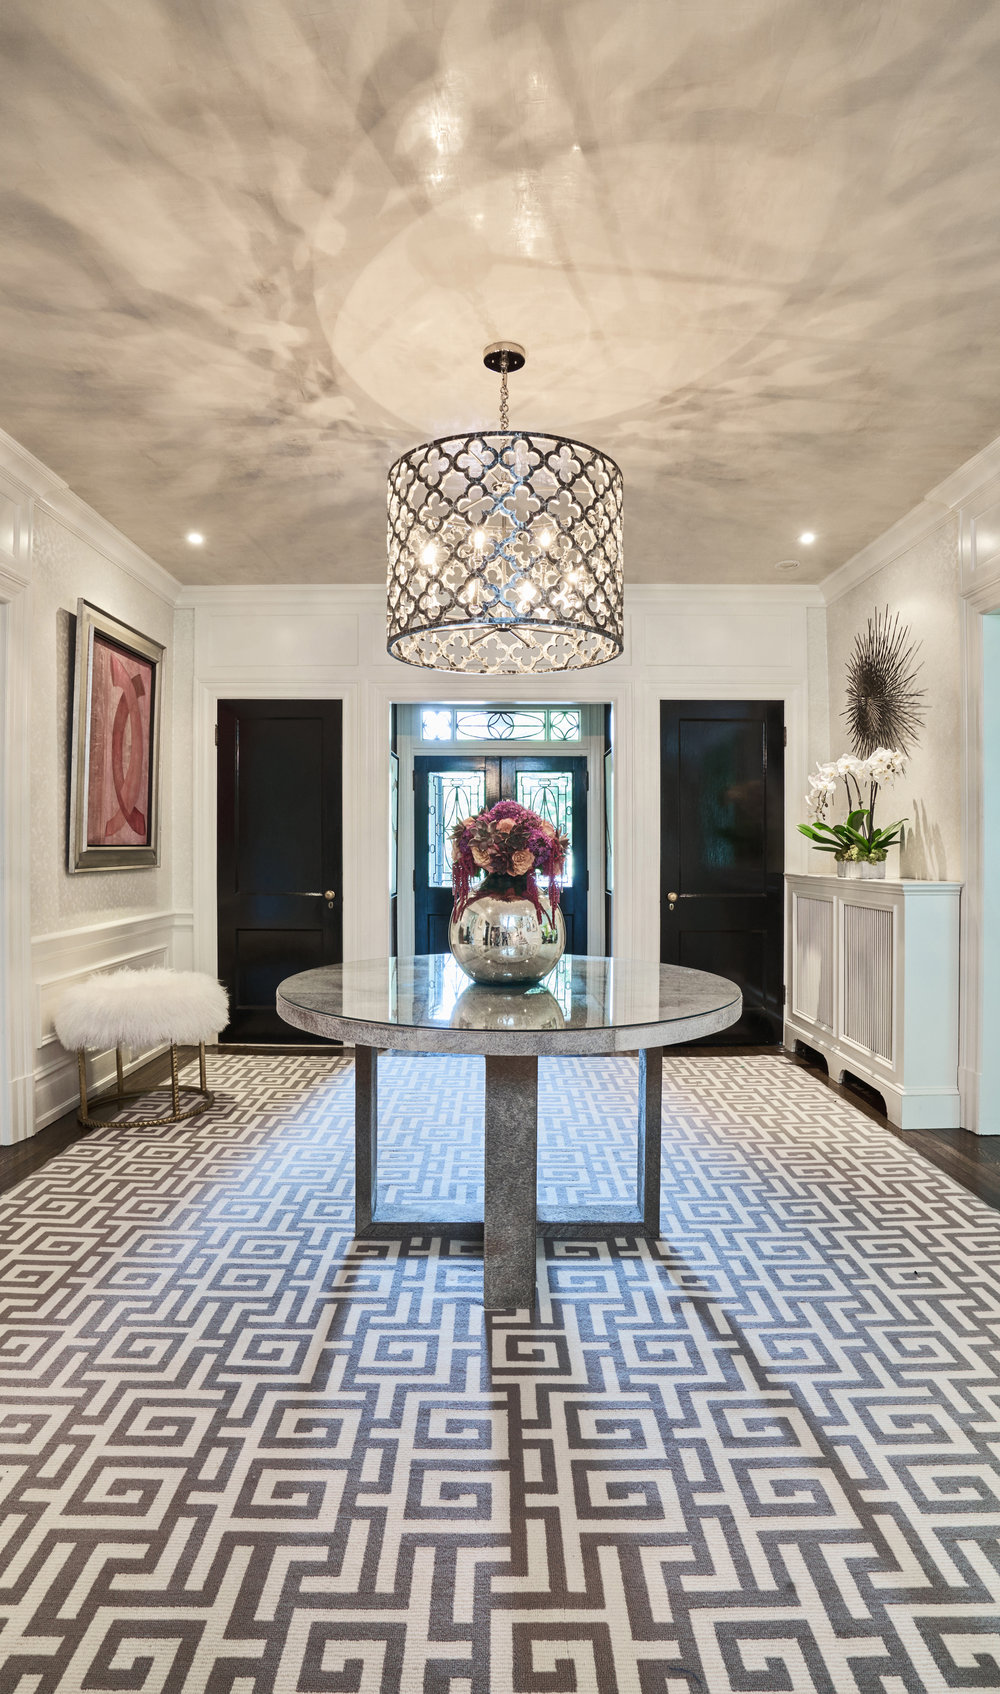 Graphic rug gives foyer a modern take against a traditional background.